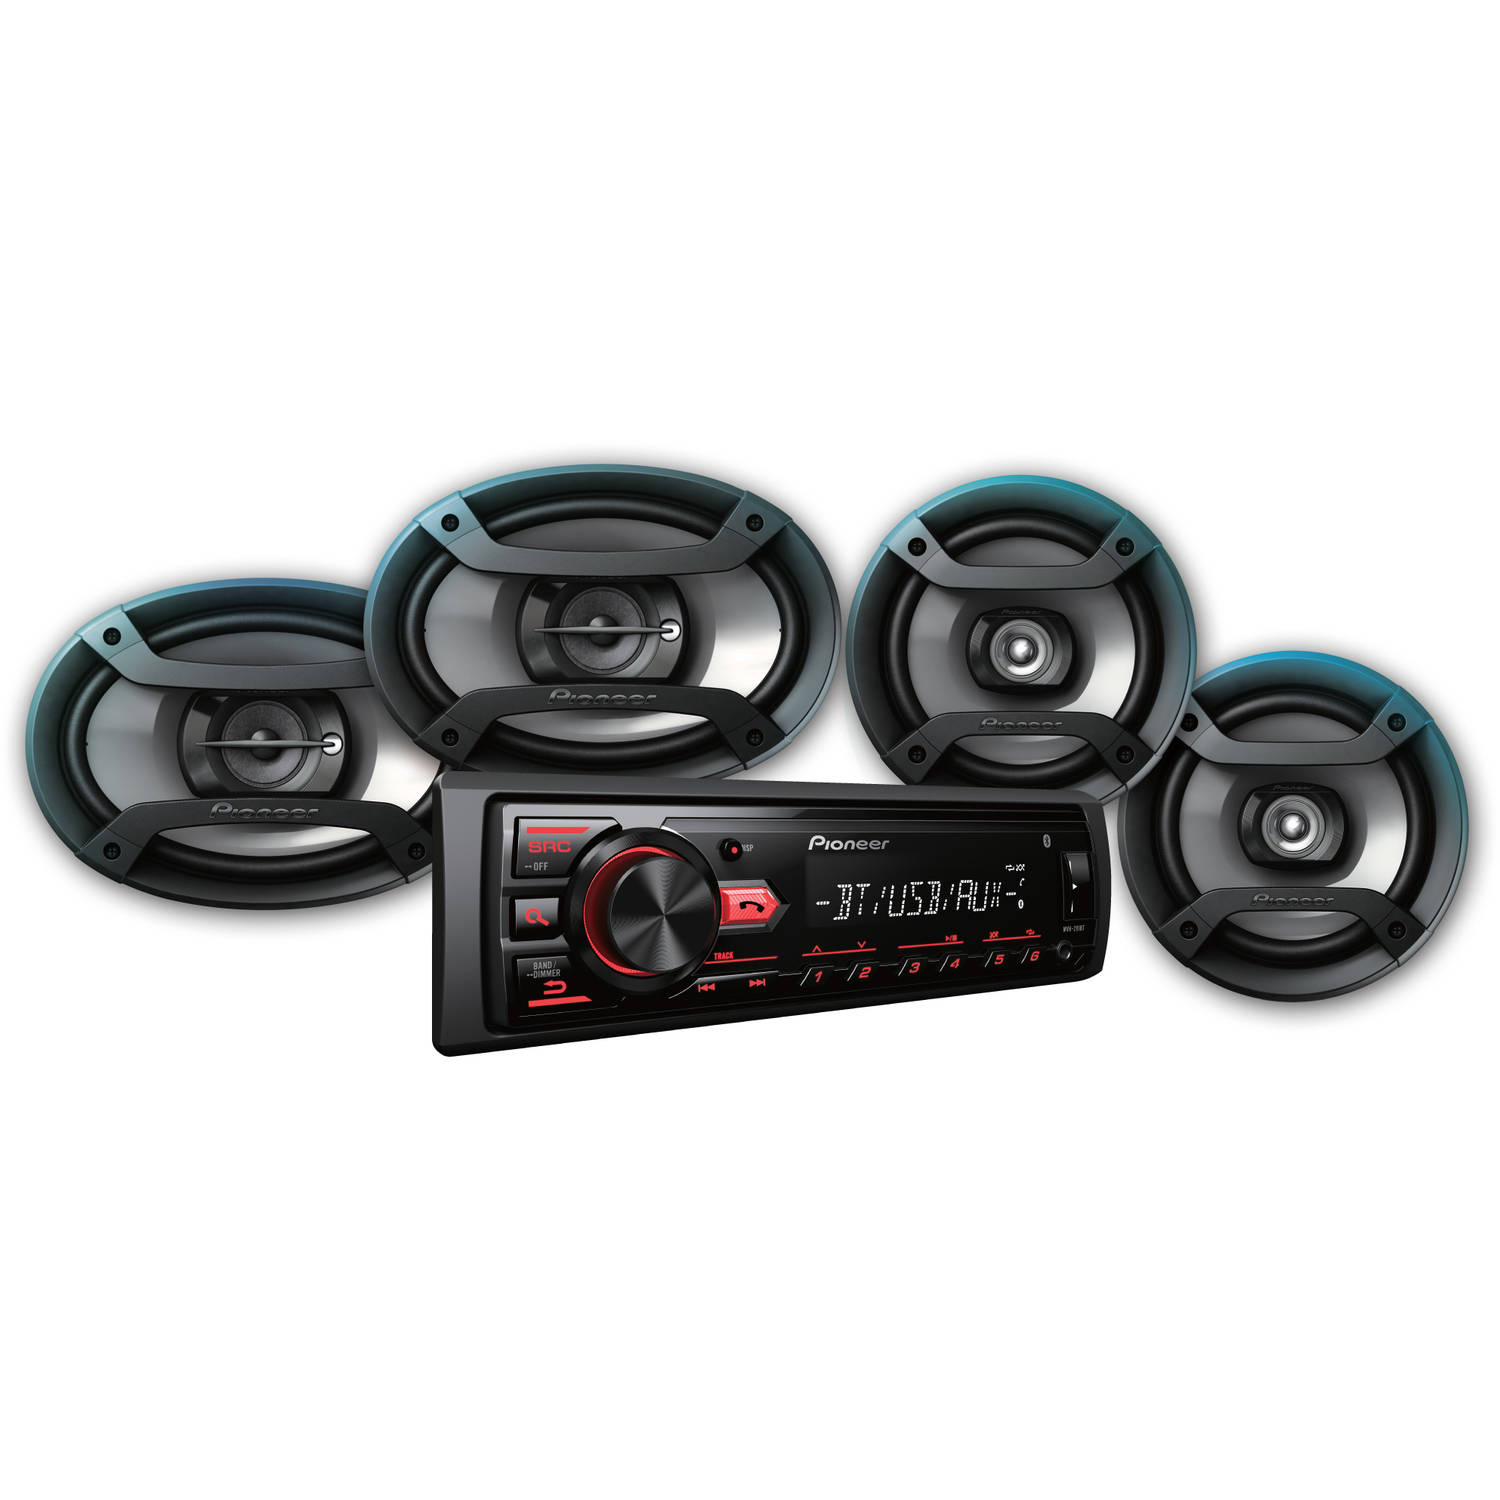 """Pioneer Bluetooth Car Stereo Receiver Bundle with Two 6.5"""" Speakers, Two 6"""" x 9"""" Speakers, and USB and Aux Inputs"""